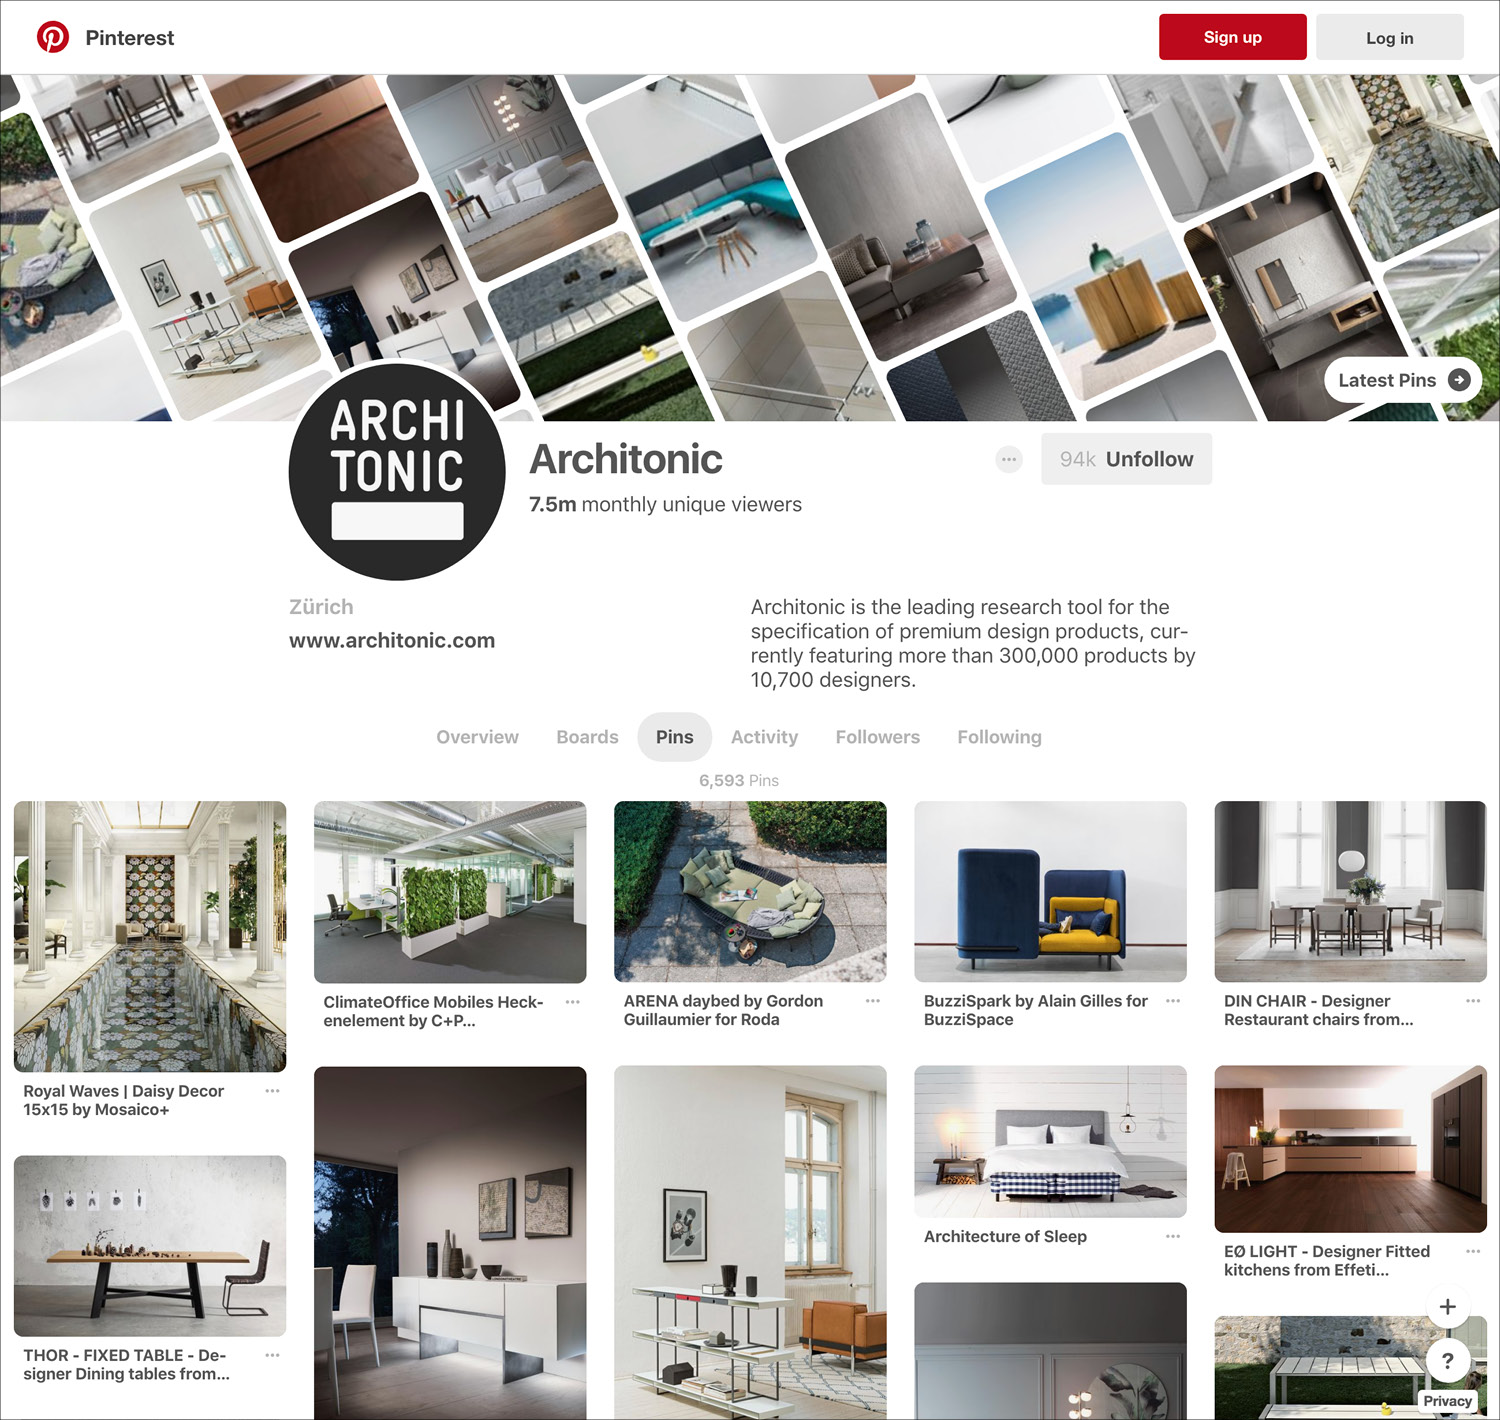 pinterest-post_architonic.jpg